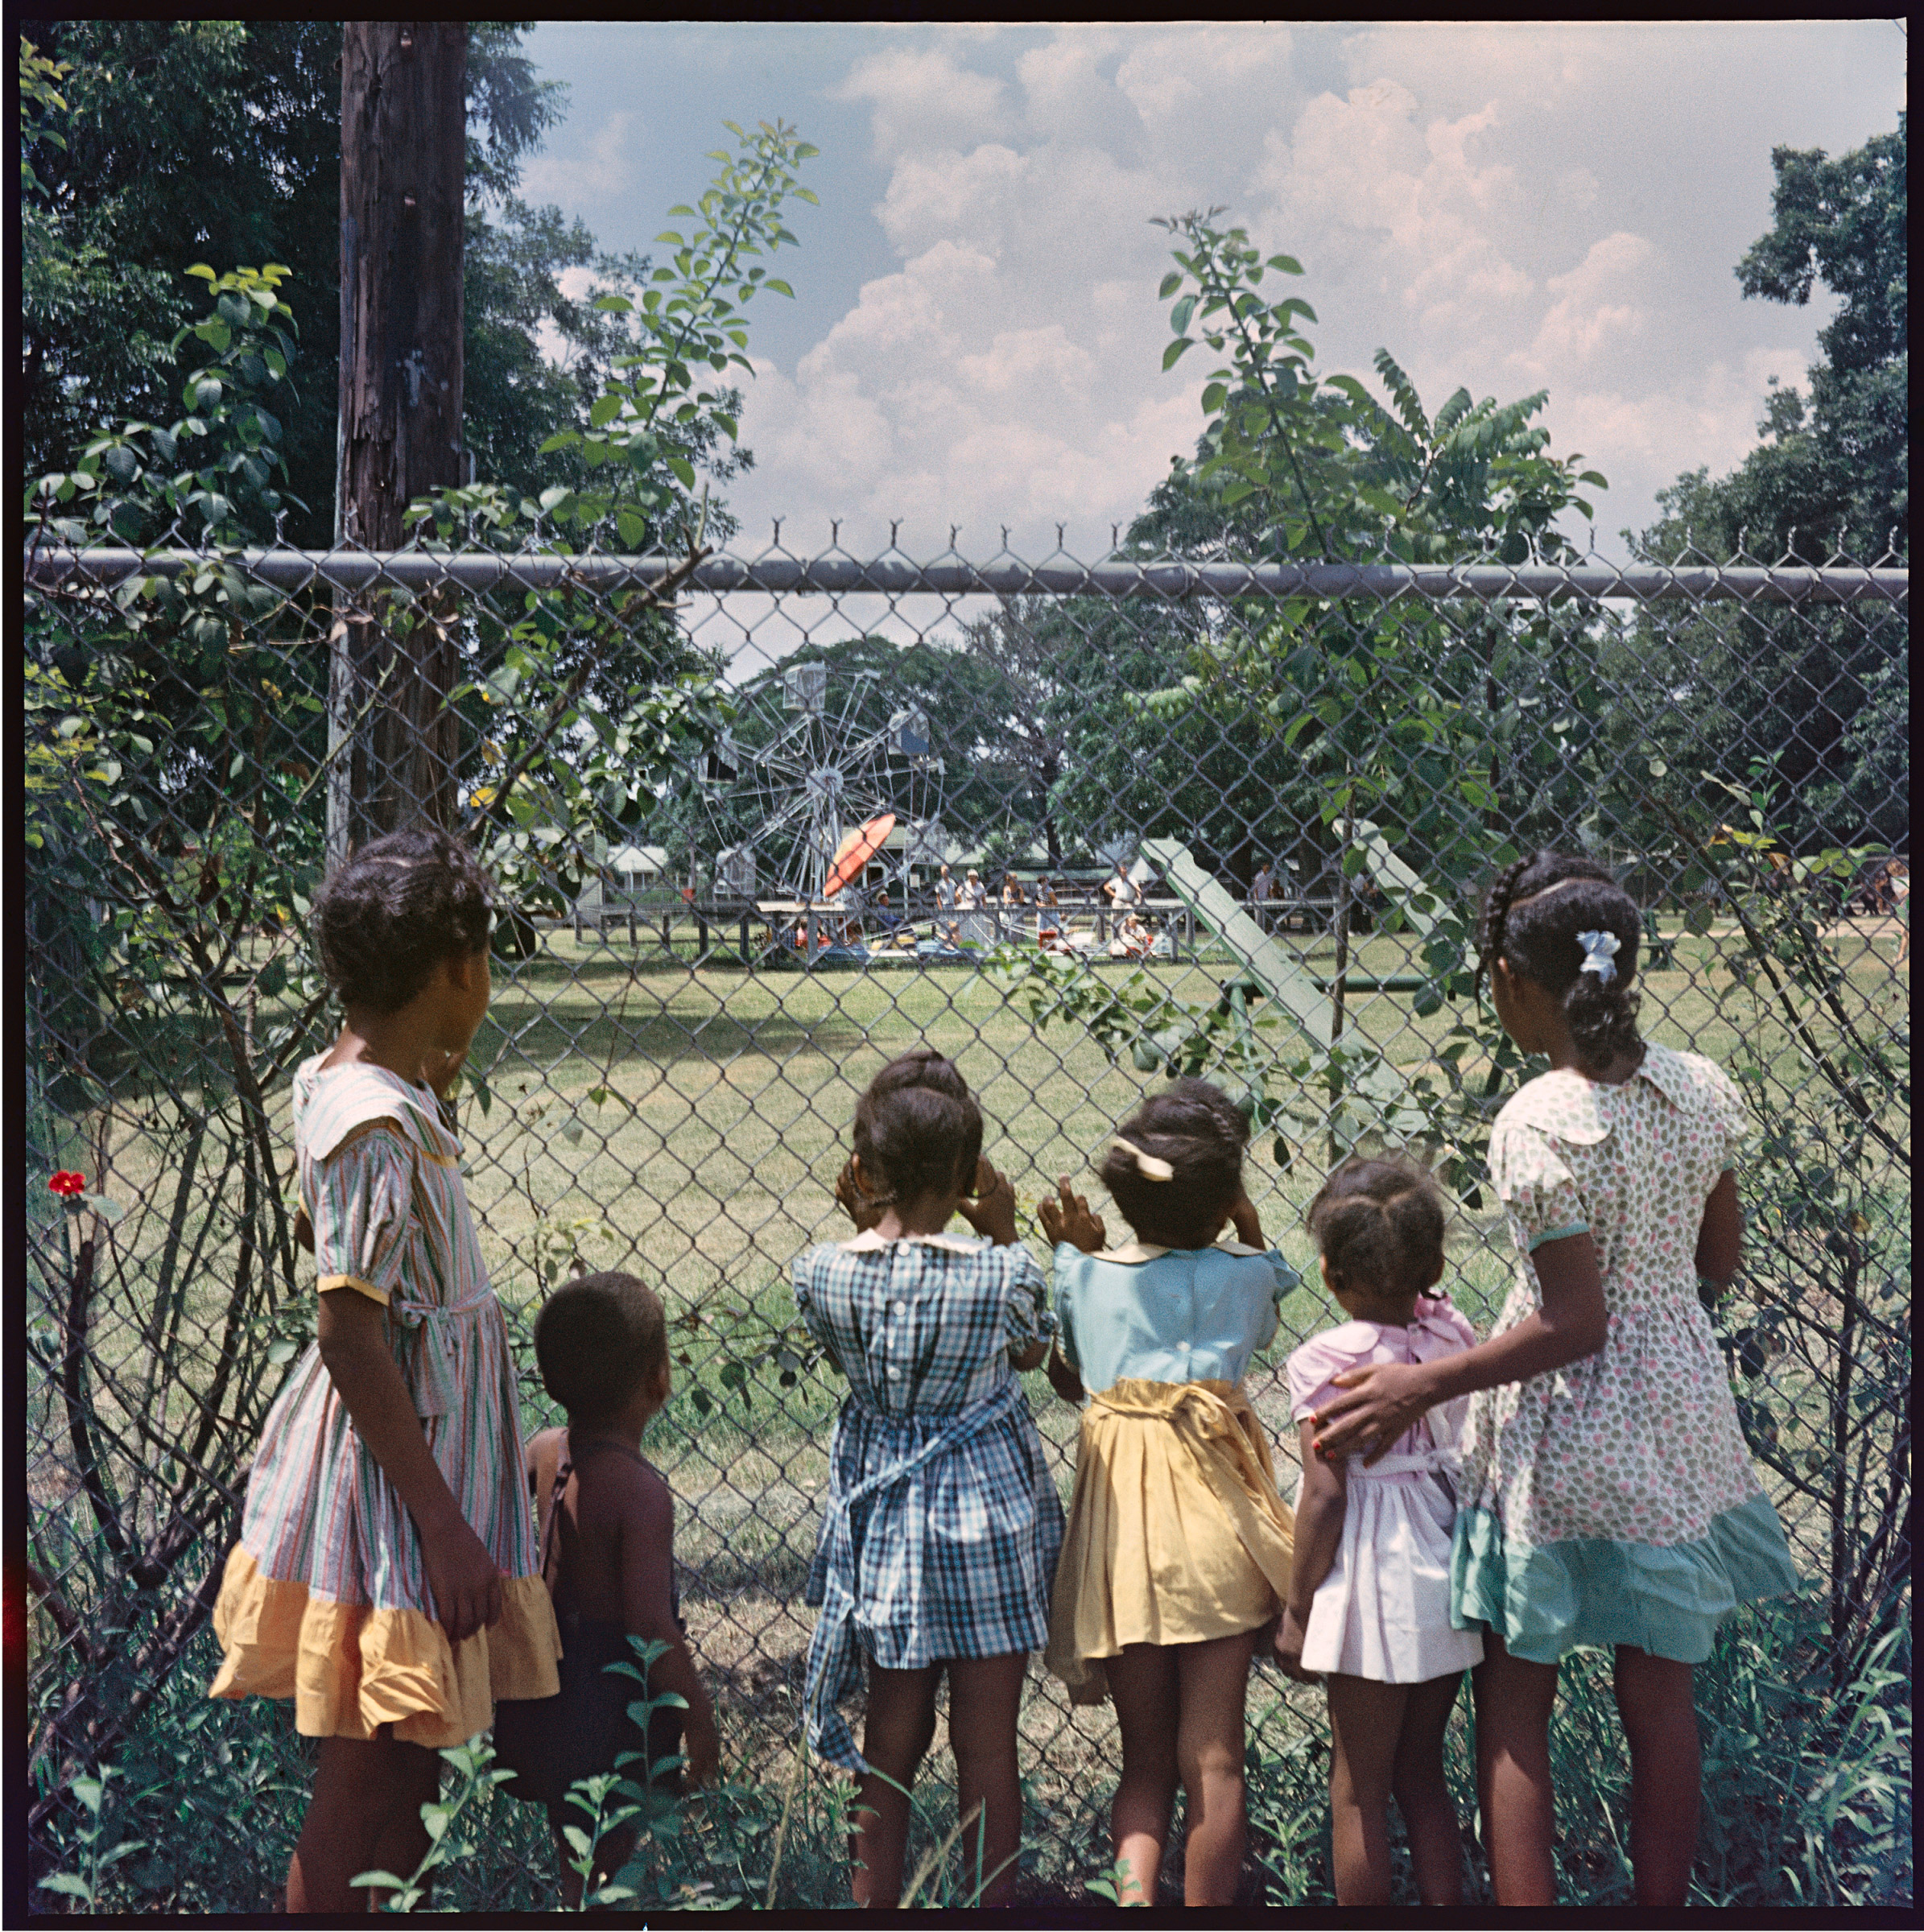 Gordon Parks (American, 1912–2006), Outside Looking In, Mobile, Alabama, 1956, printed 2012, pigmented inkjet print. High Museum of Art, Atlanta, gift of The Gordon Parks Foundation, 2014.386.9.